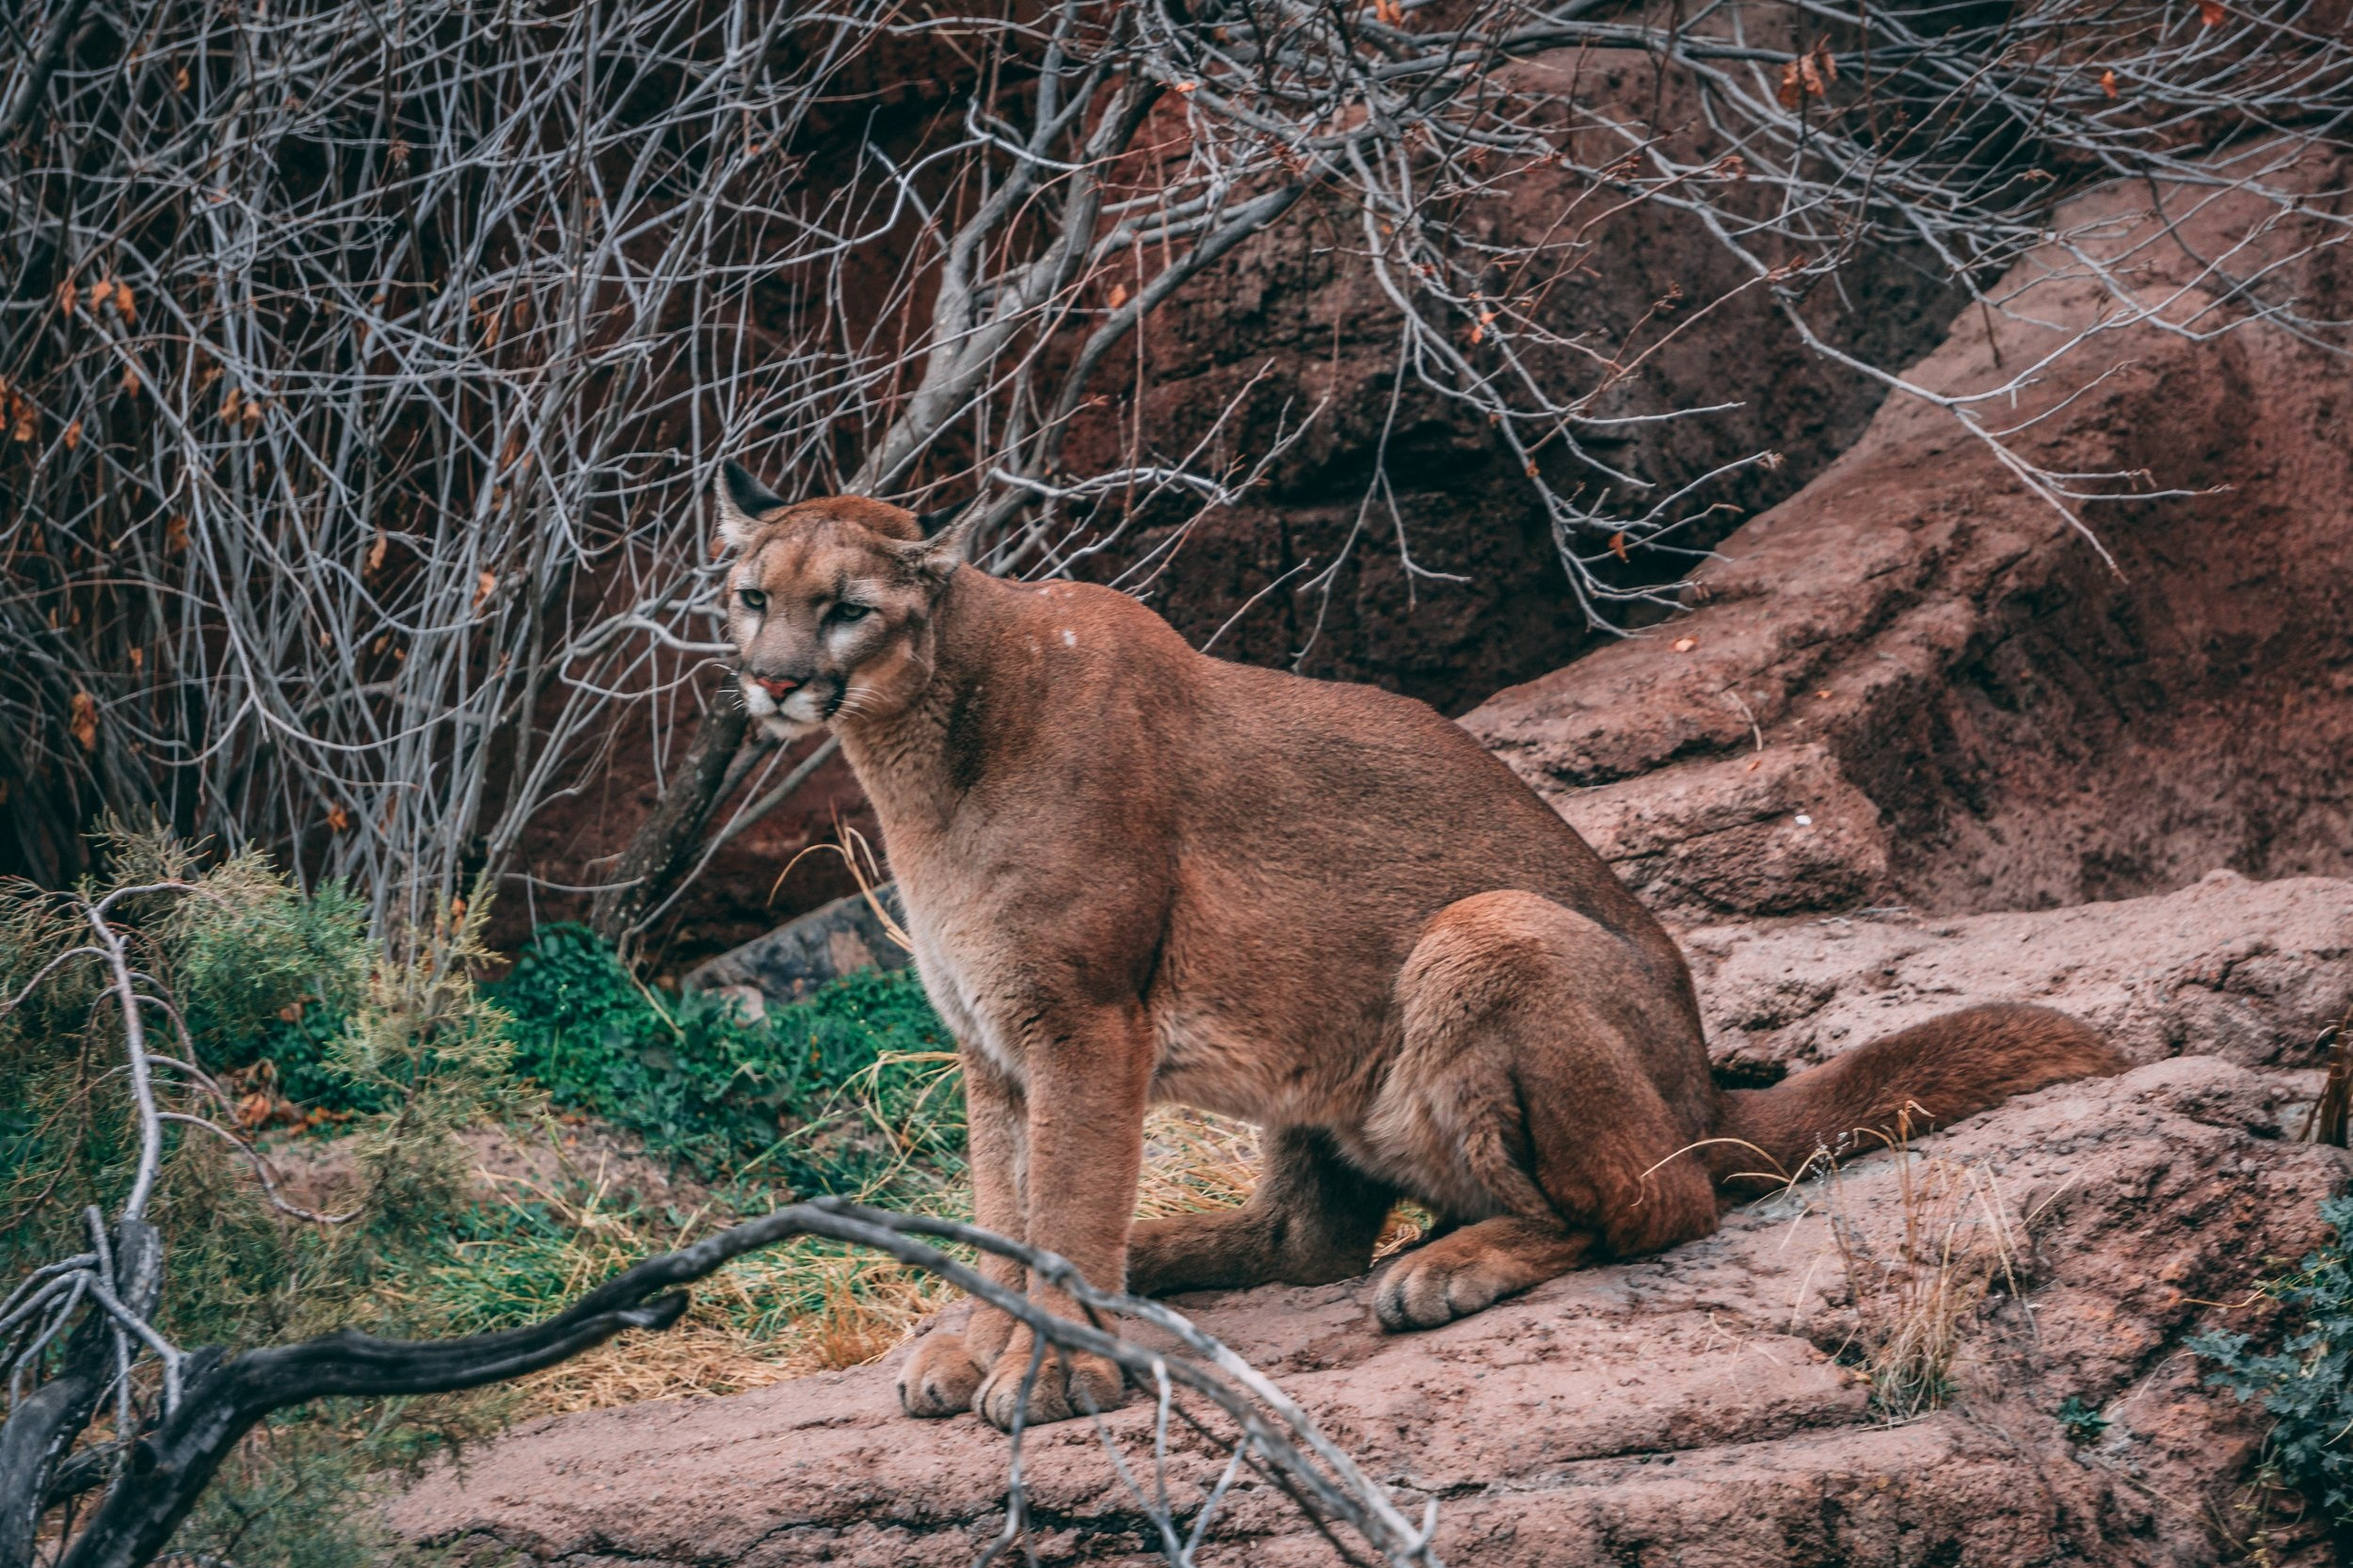 Wildlife Conservation Center - The Conservation Center is neither a zoo nor an animal park; but a sanctuary dedicated to the rescue of wild animals found abandoned, injured or orphaned.